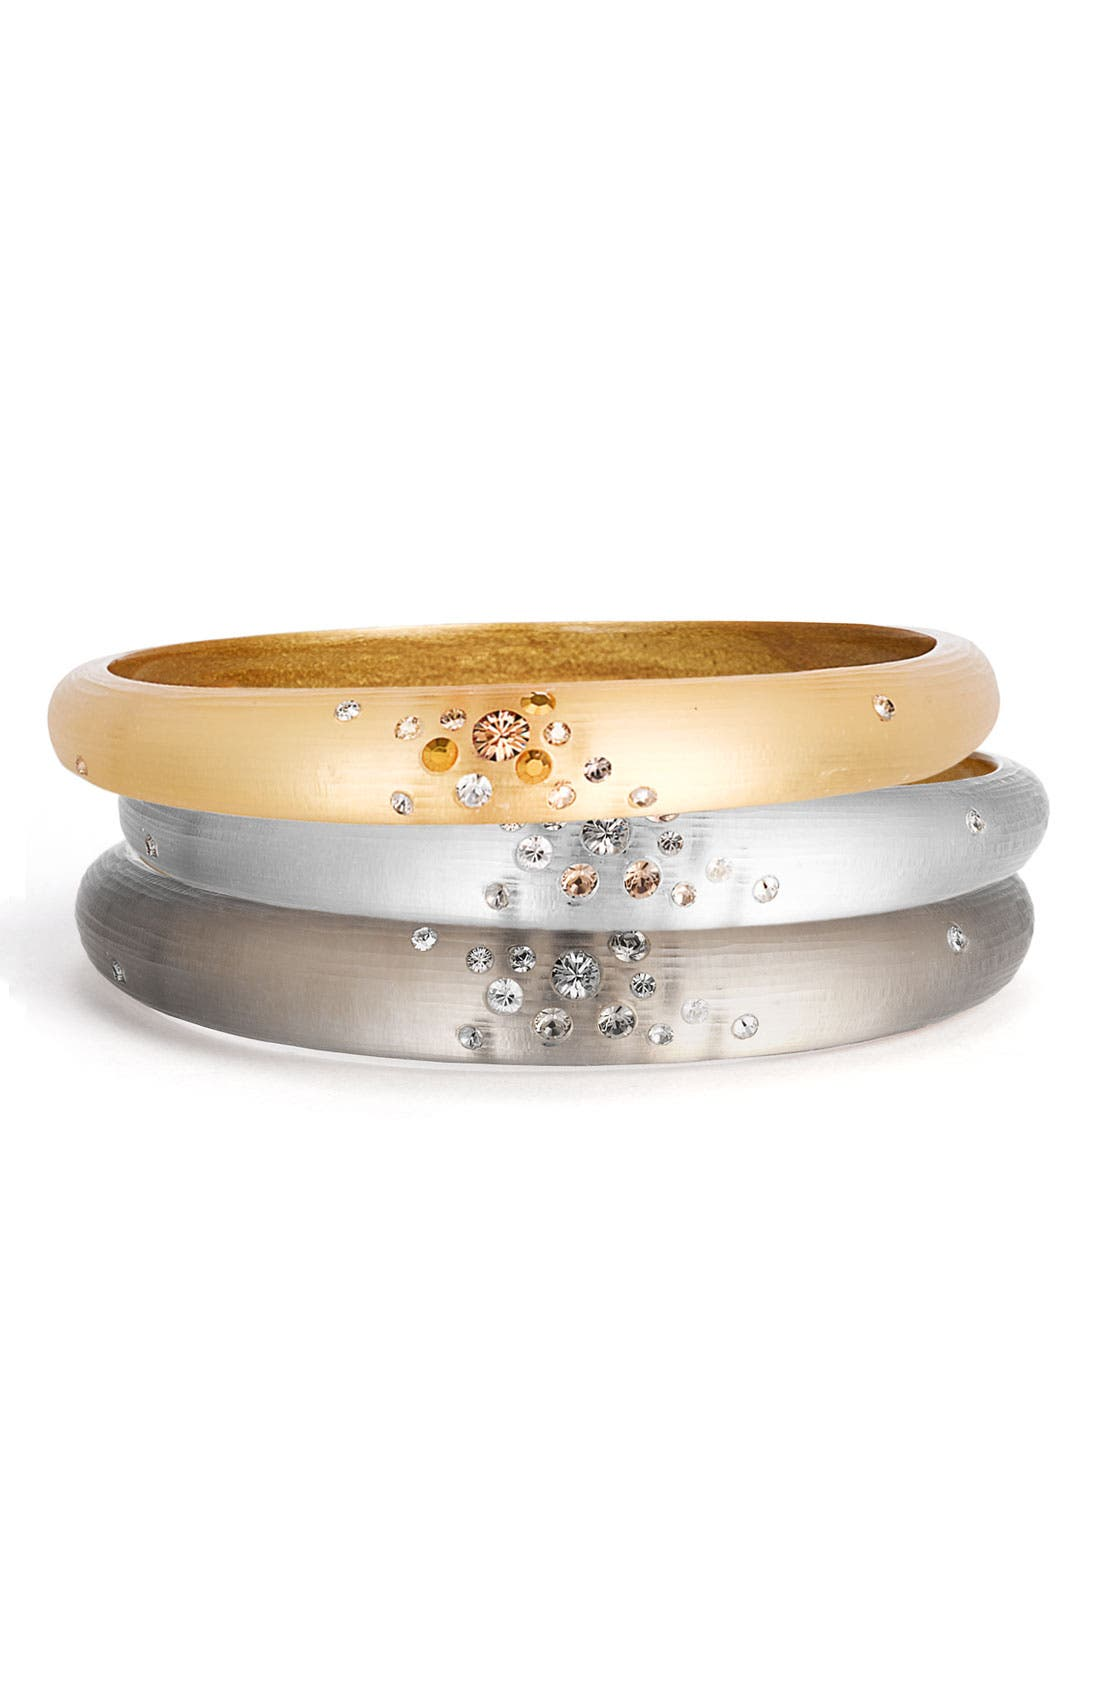 Alternate Image 2 Selected - Alexis Bittar 'Dust' Skinny Tapered Bangle (Nordstrom Exclusive)